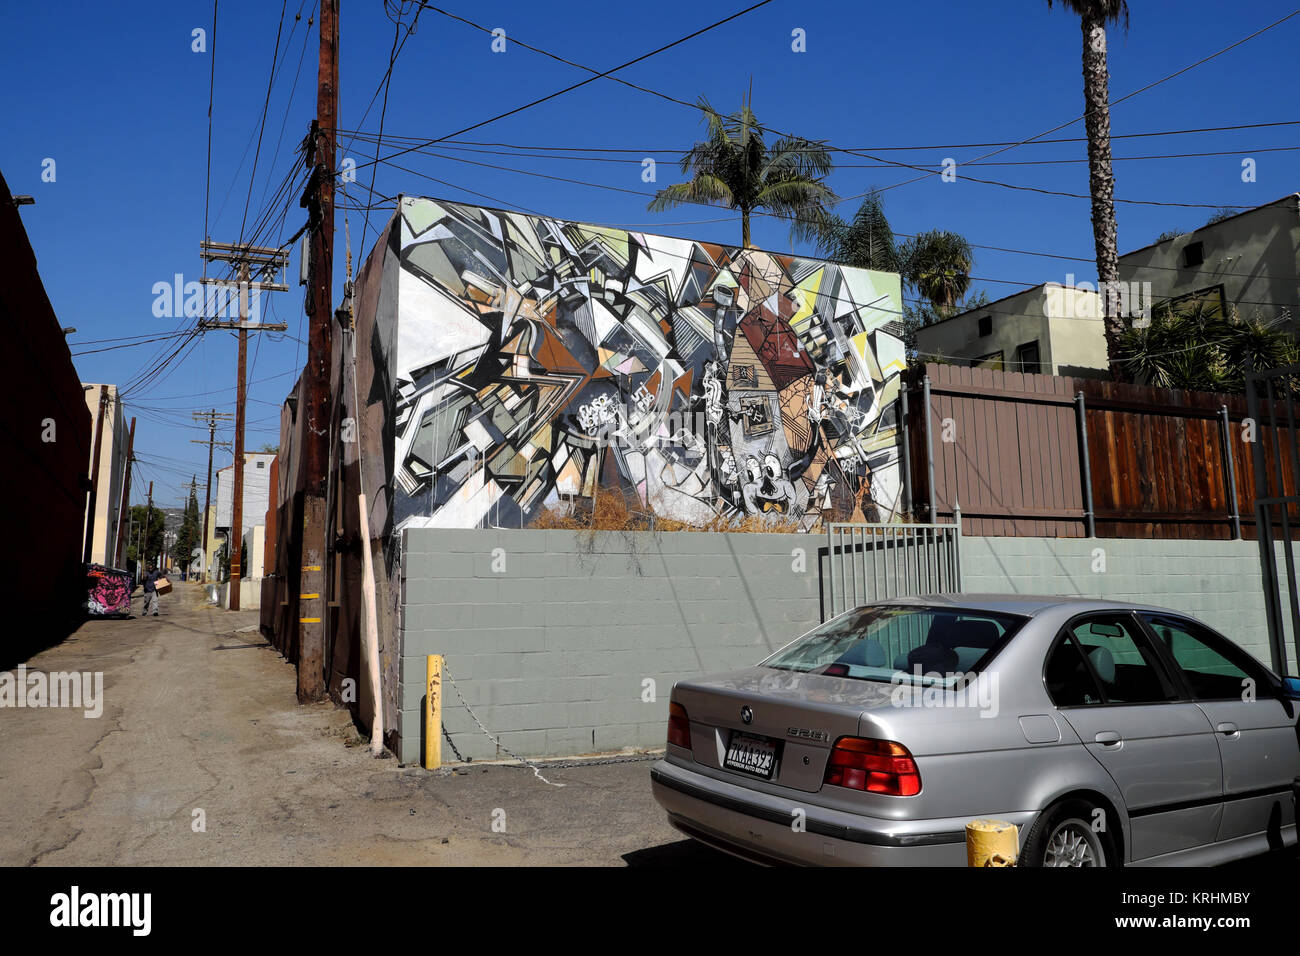 An abstract mural on a wall and parked car in a back alley in the Los Feliz neighbourhood of Los Angeles, California - Stock Image